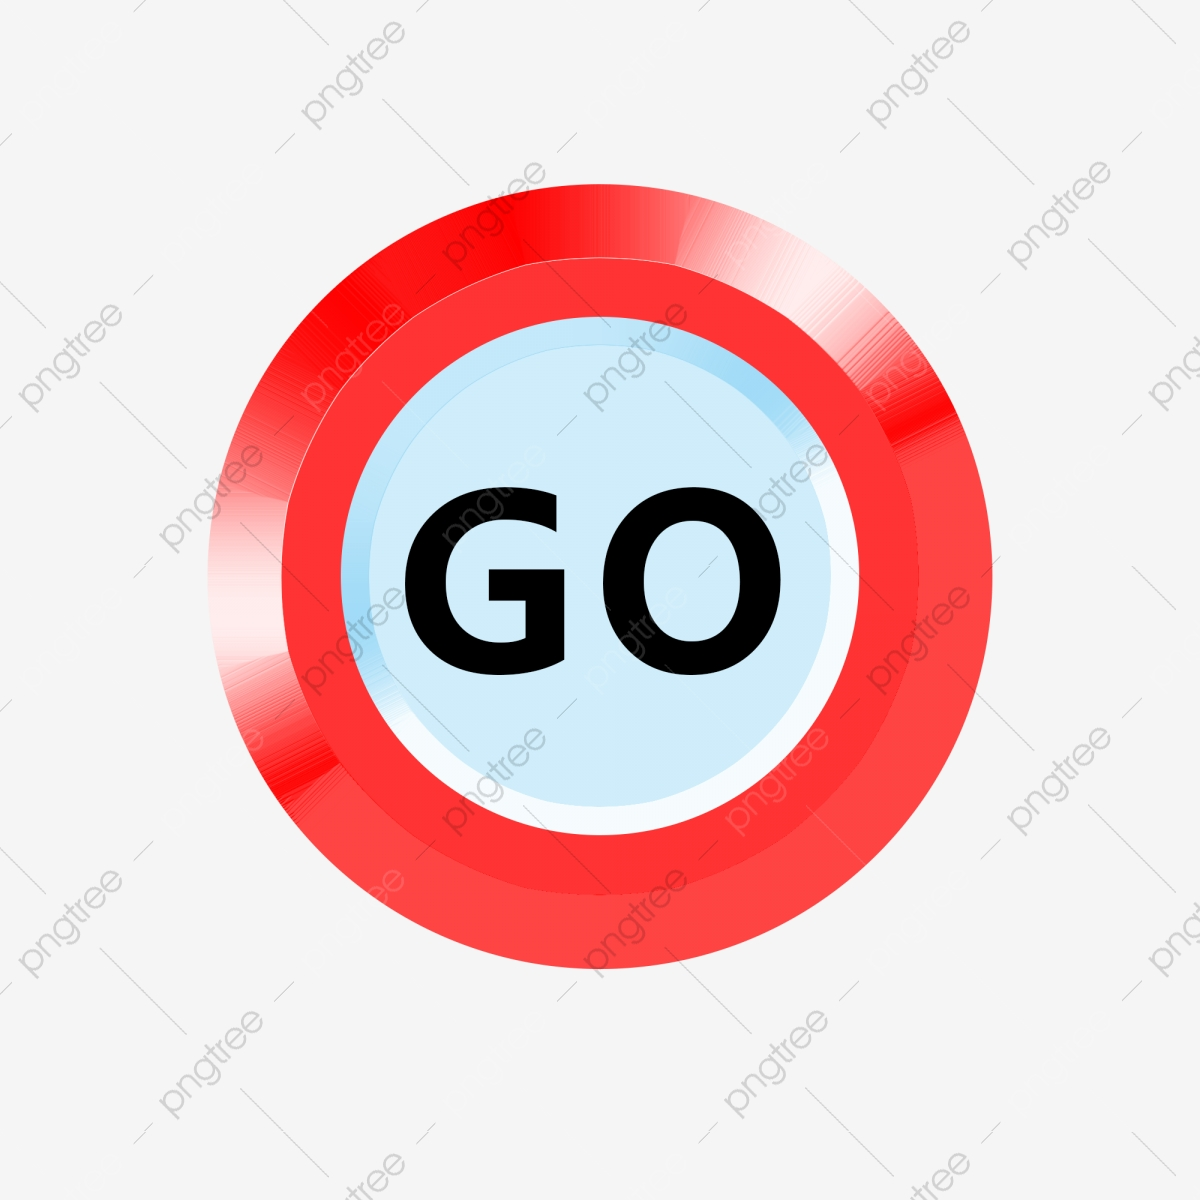 red button png images vector and psd files free download on pngtree https pngtree com freepng red button decoration illustration 4625301 html